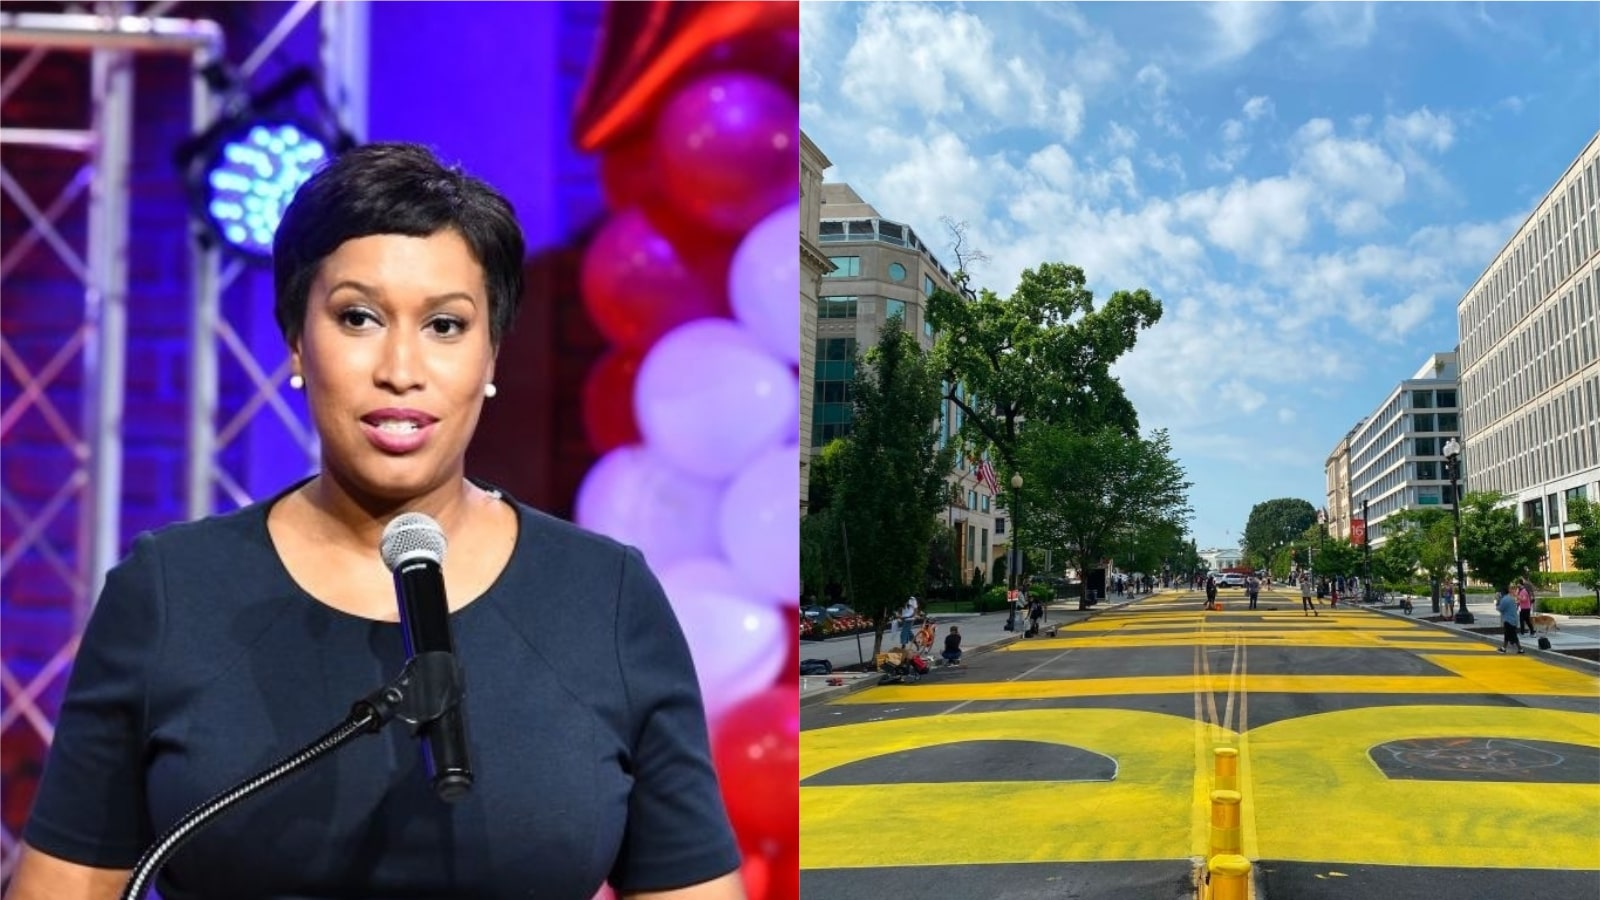 D.C. Mayor Gets 'Black Lives Matter' Painted On Street Leading Up To White House, Gets Slammed By Area's BLM Chapter